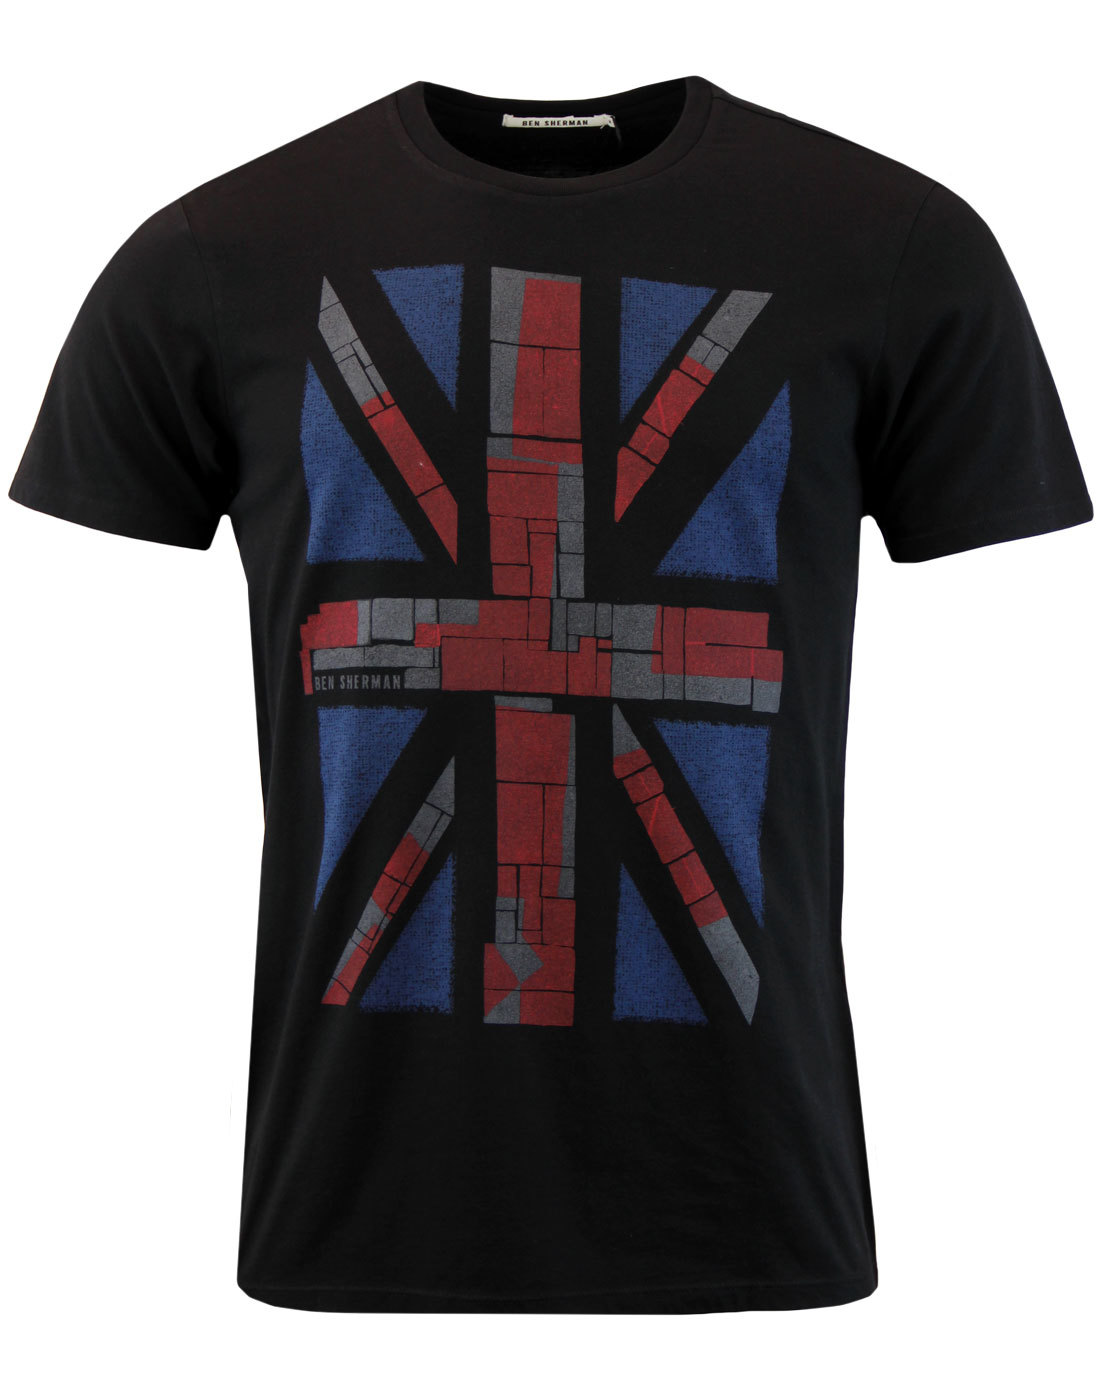 BEN SHERMAN Retro Mod Colour Block Union Jack Tee